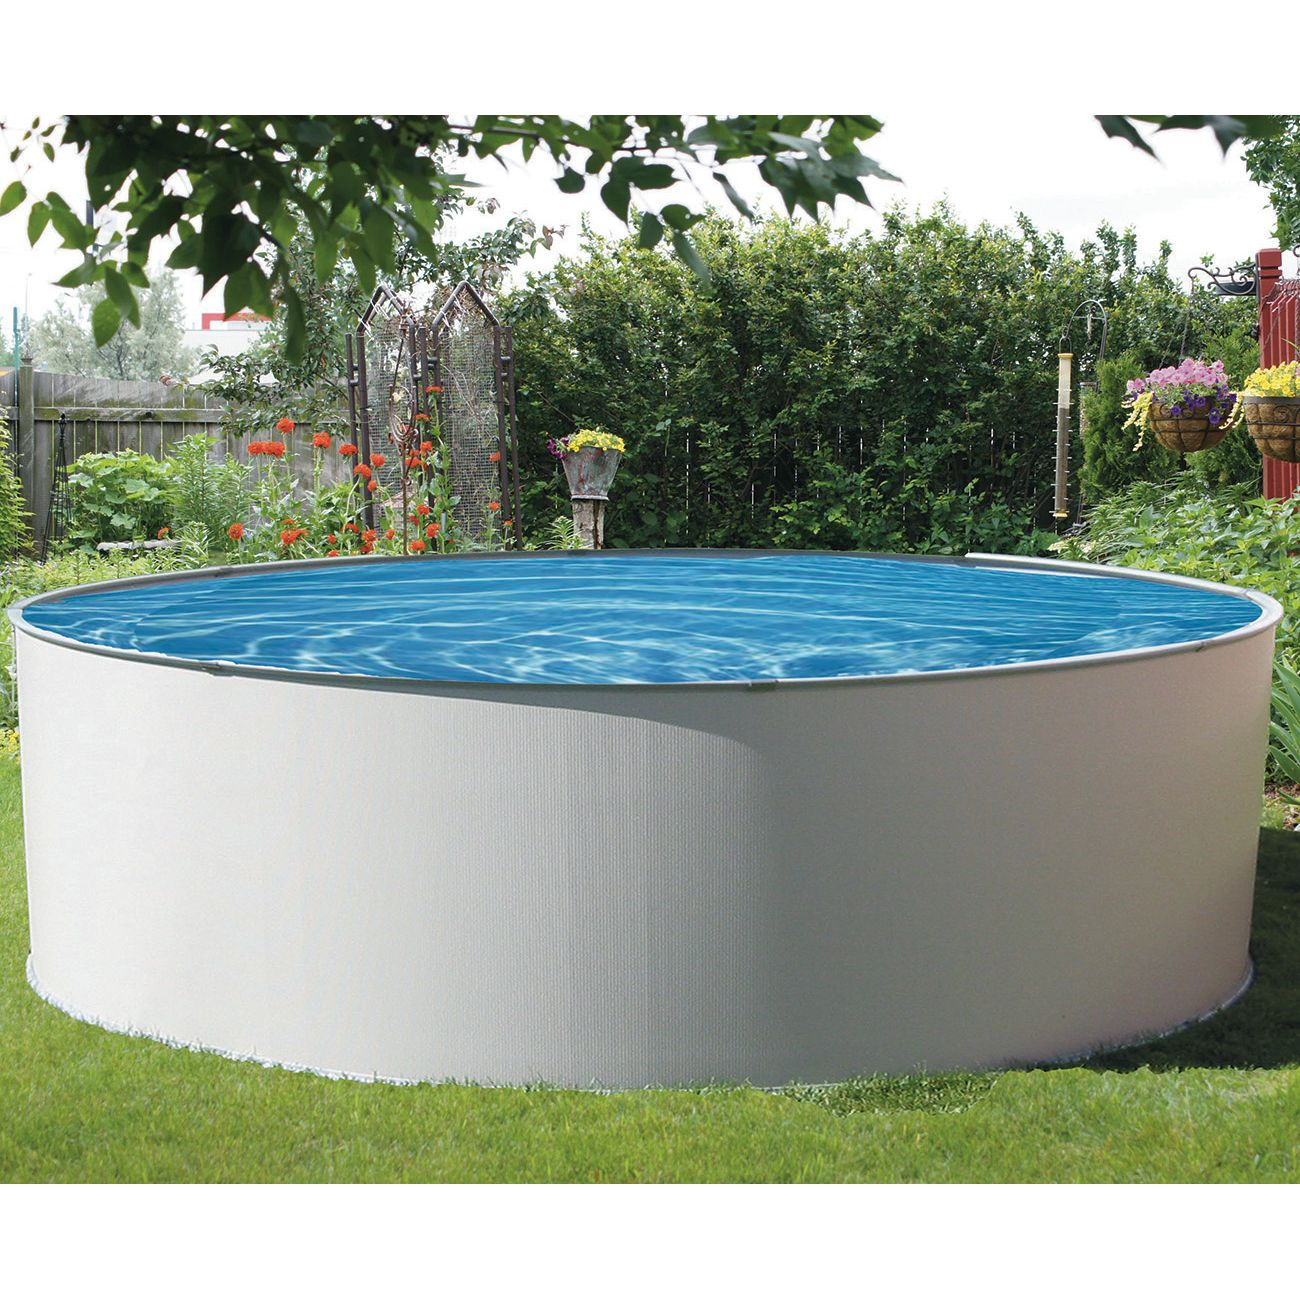 Simplicity 18 pied ronde piscine hors terre pool for Chauffe eau piscine hors terre prix